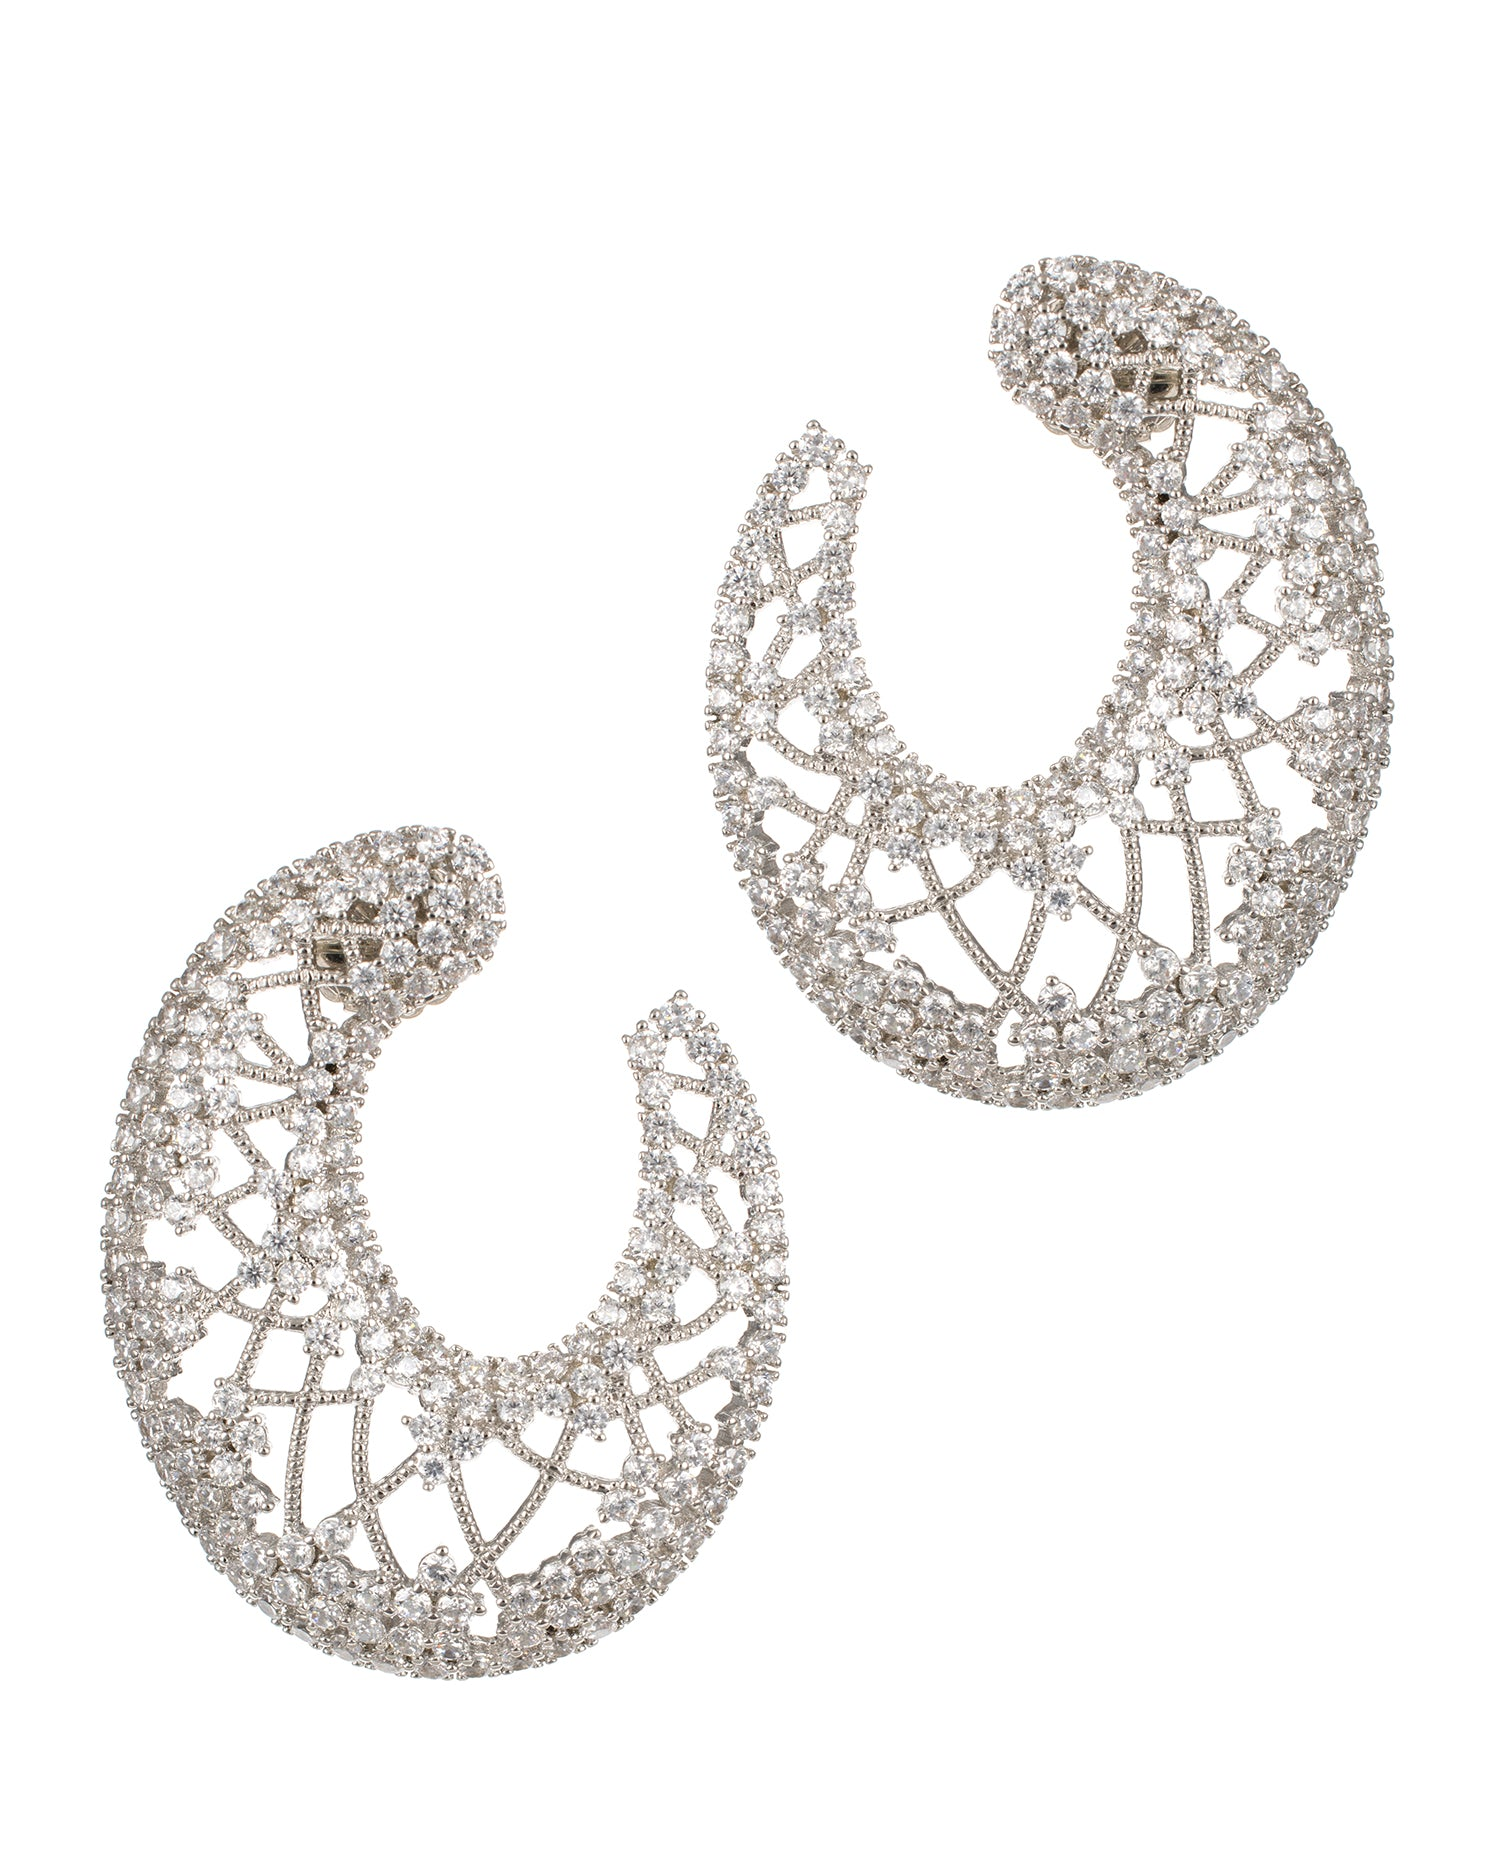 Pave CZ Lace Earrings